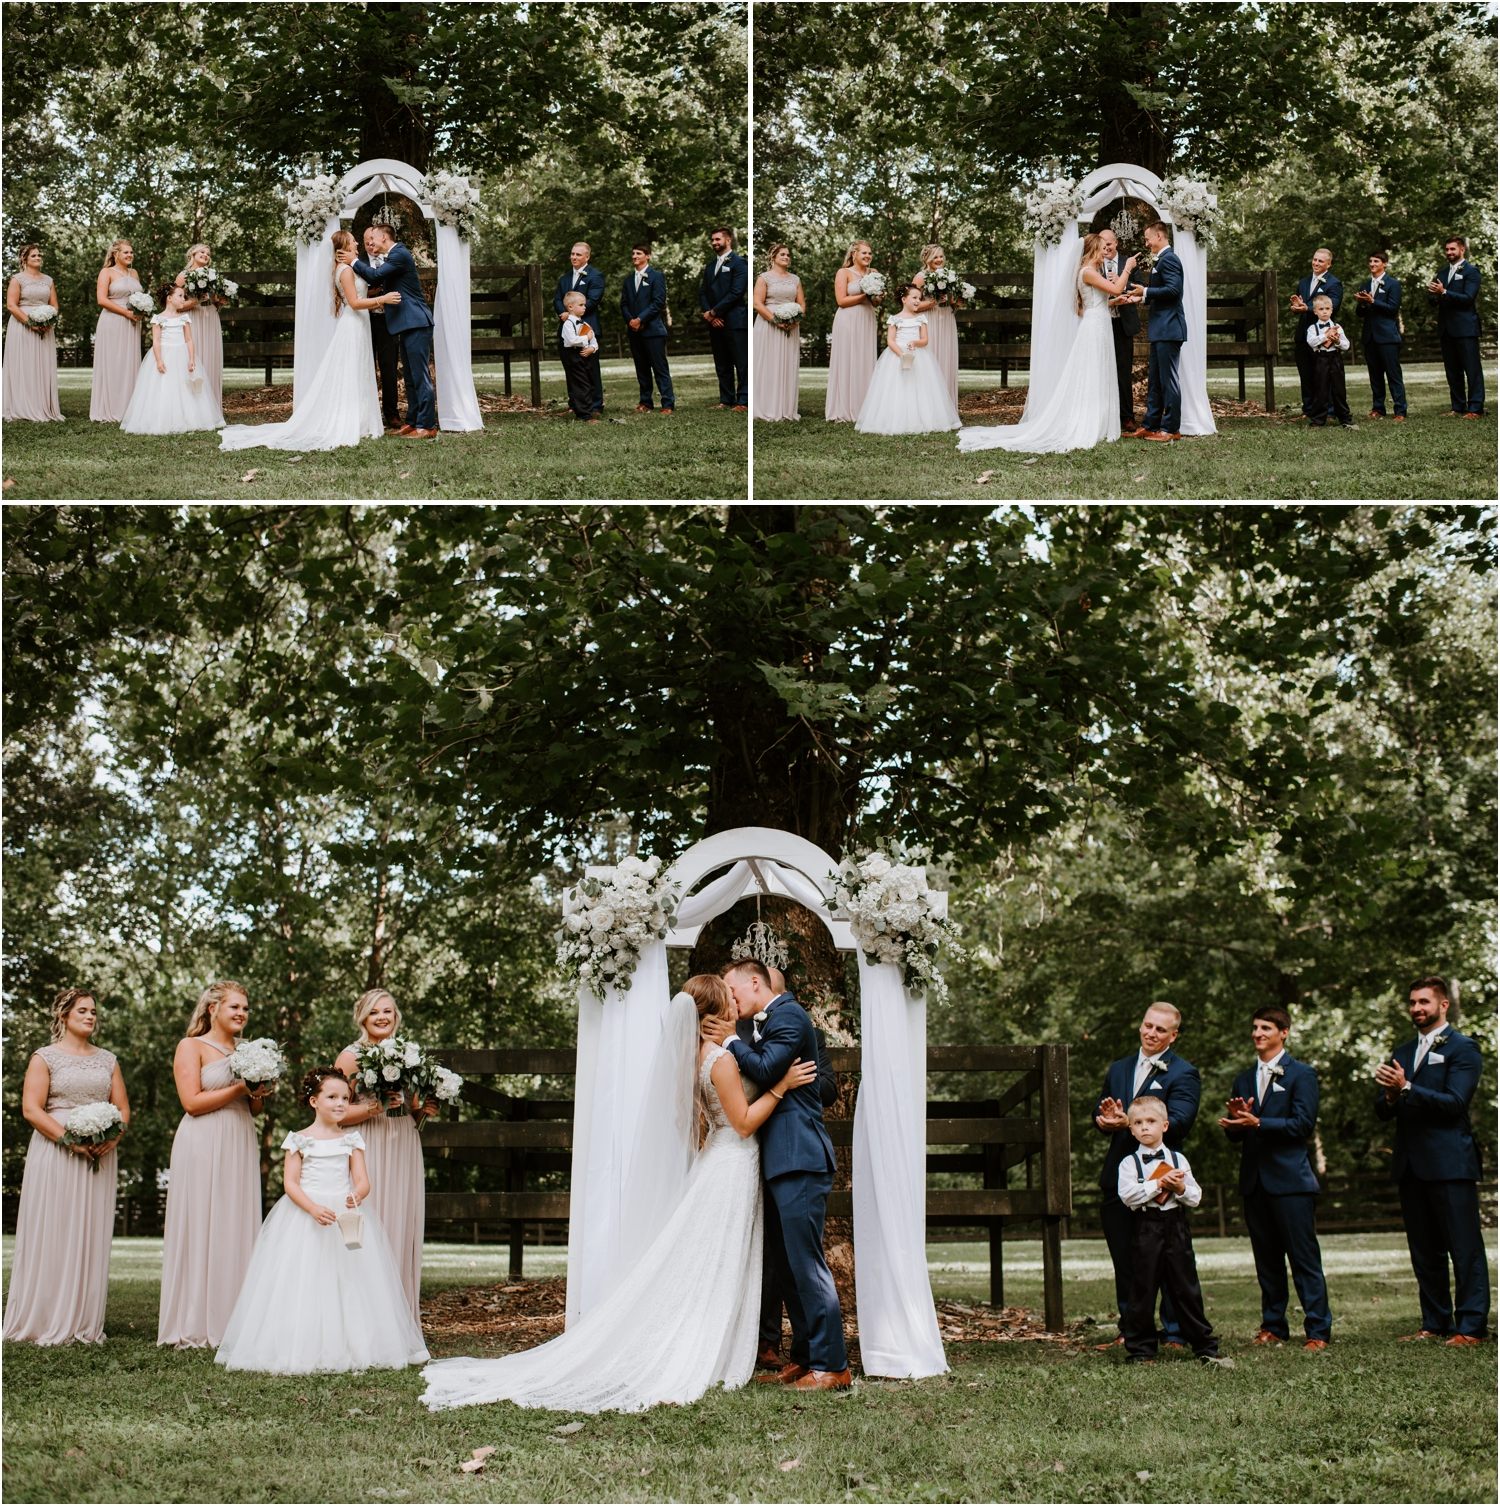 bride and groom first kiss under white arbor with floral arrangements and drapes